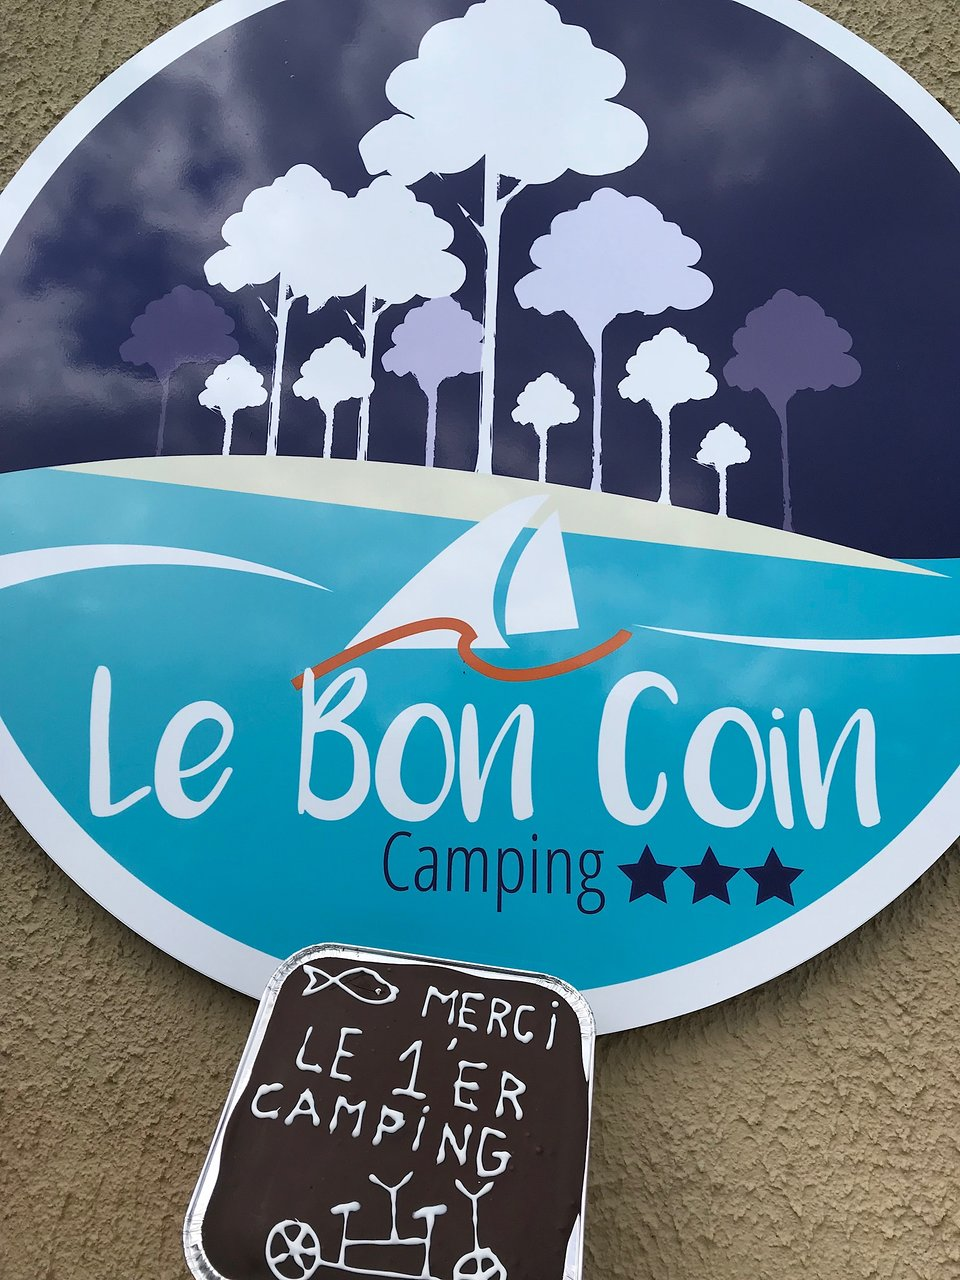 Camping Le Bon Coin Updated 2019 Campground Reviews